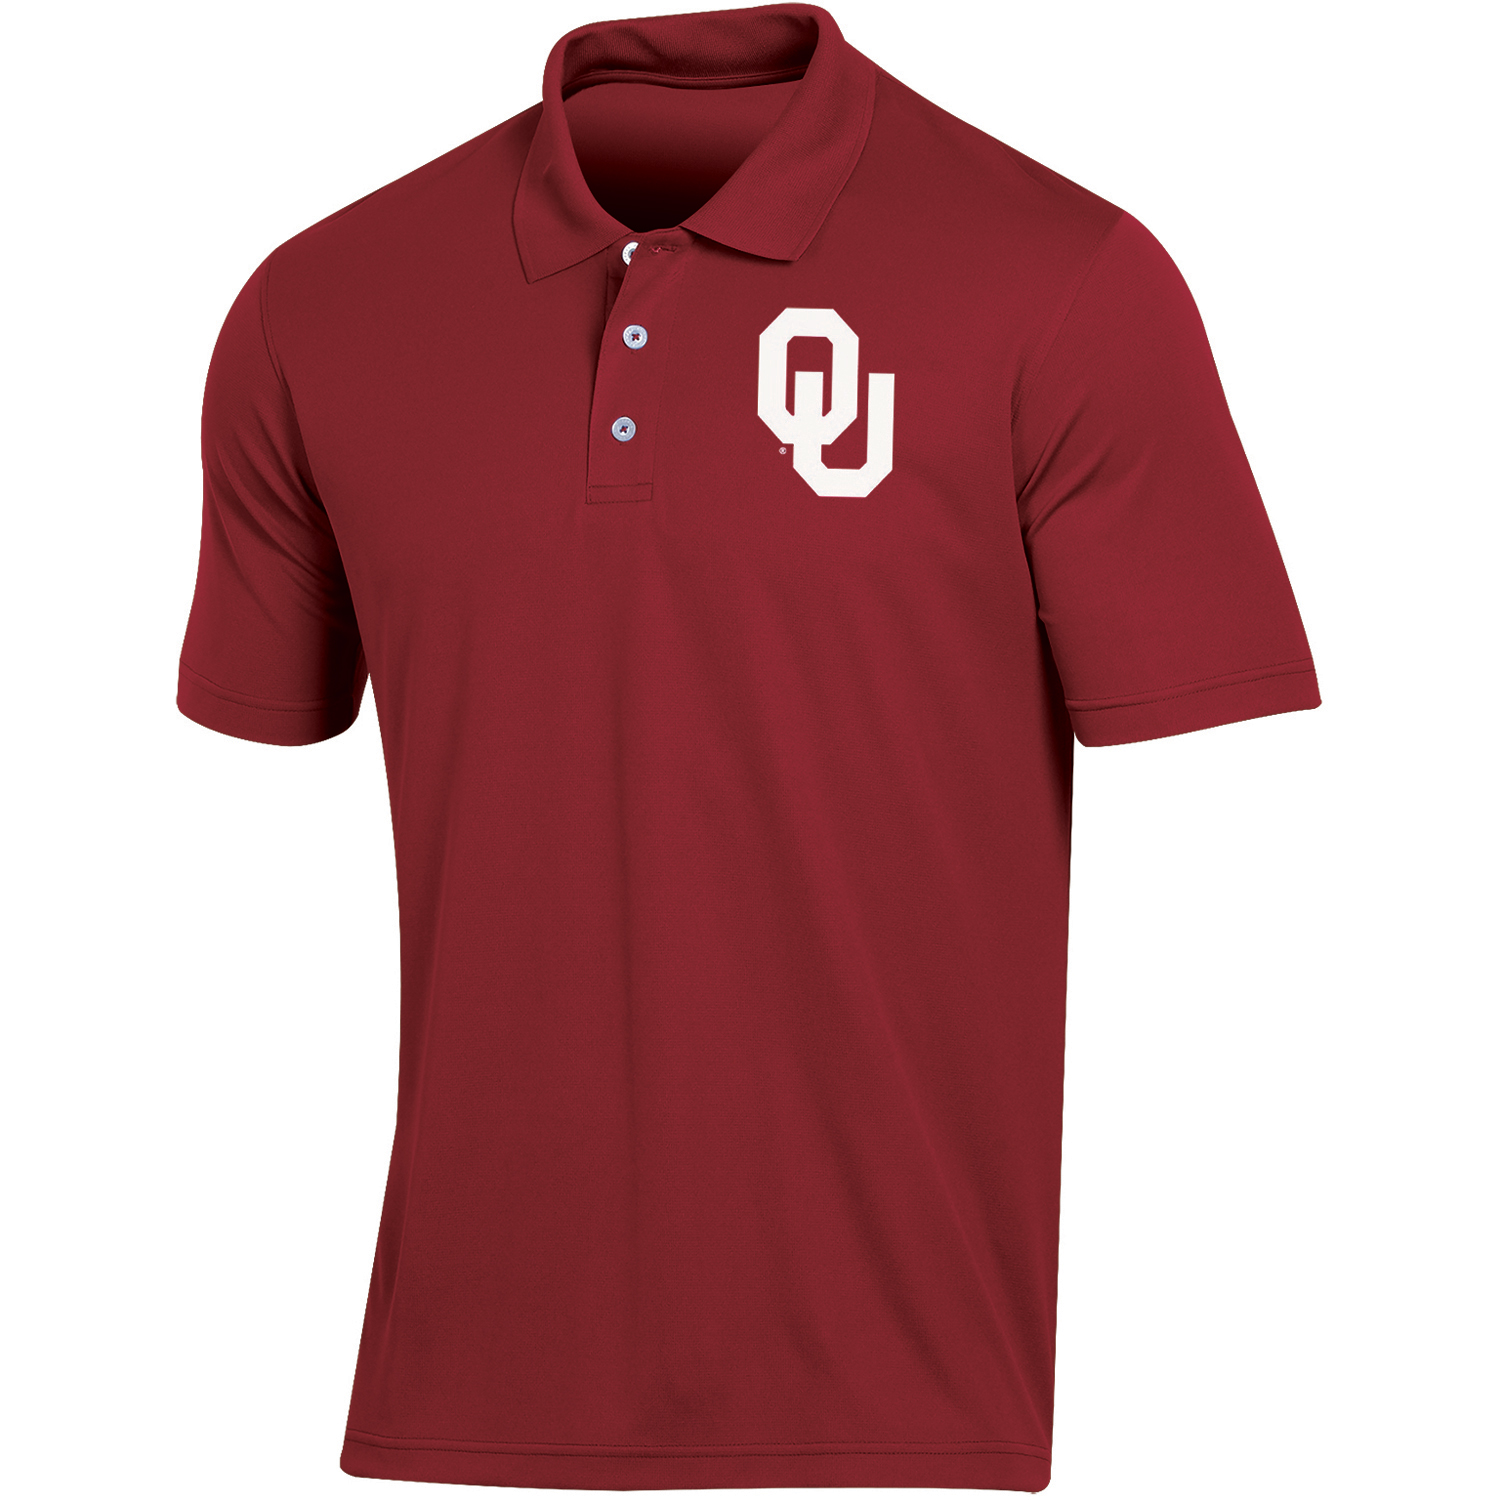 Men's Russell Crimson Oklahoma Sooners Classic Fit Synthetic Polo